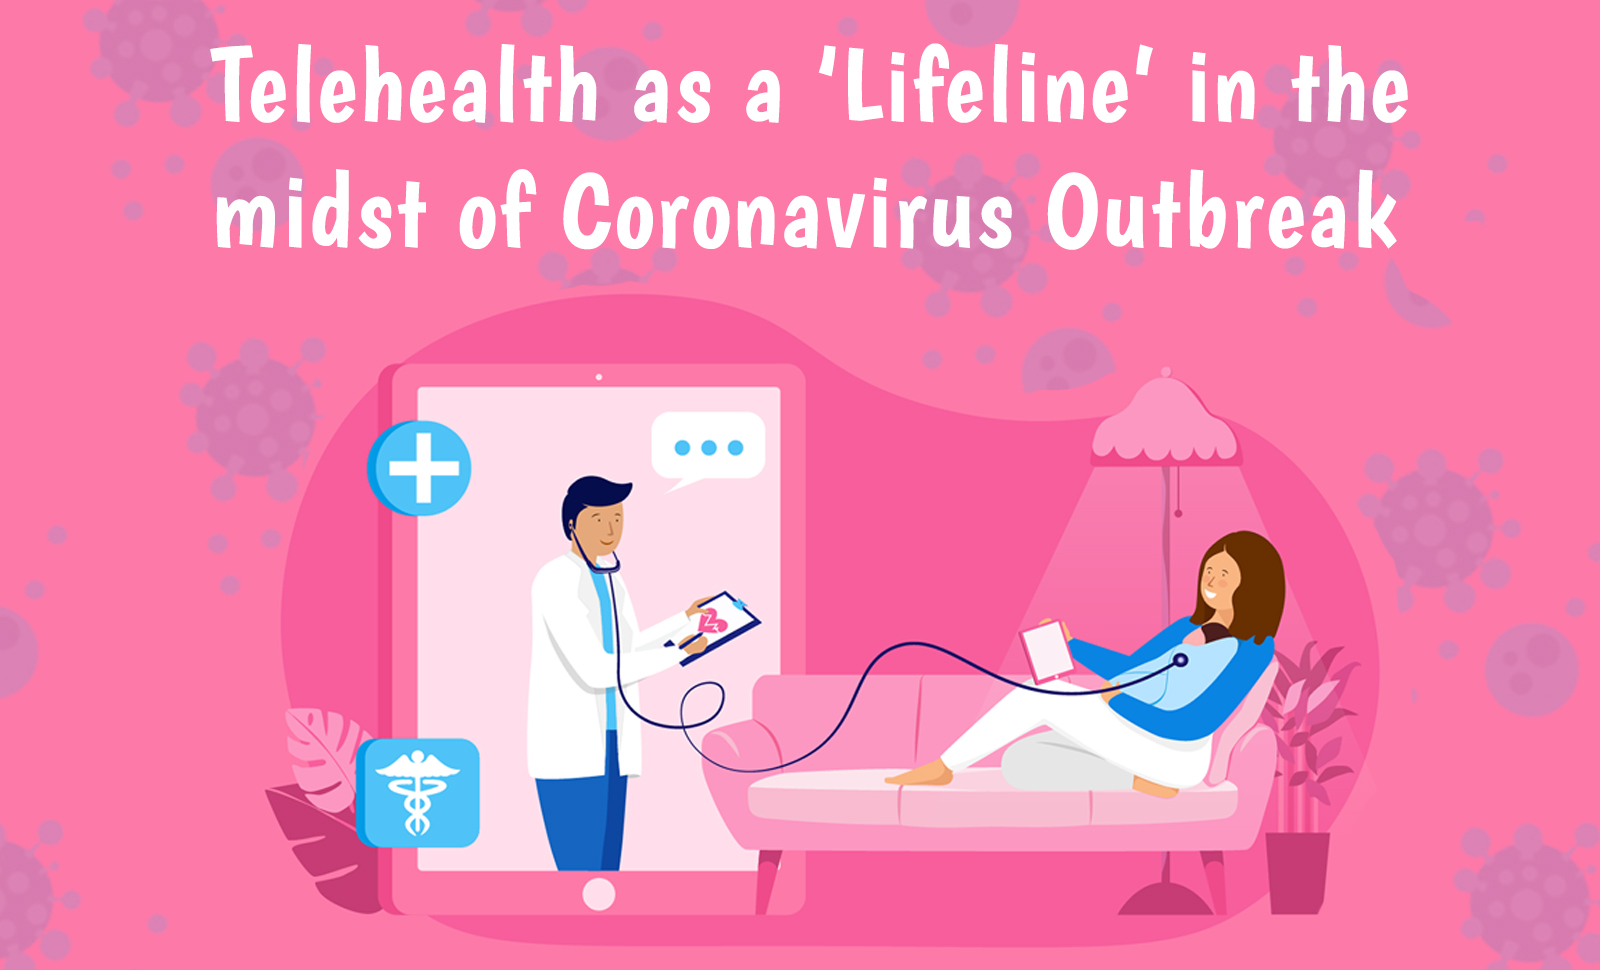 Telehealth as a 'Lifeline' in the midst of Coronavirus Outbreak